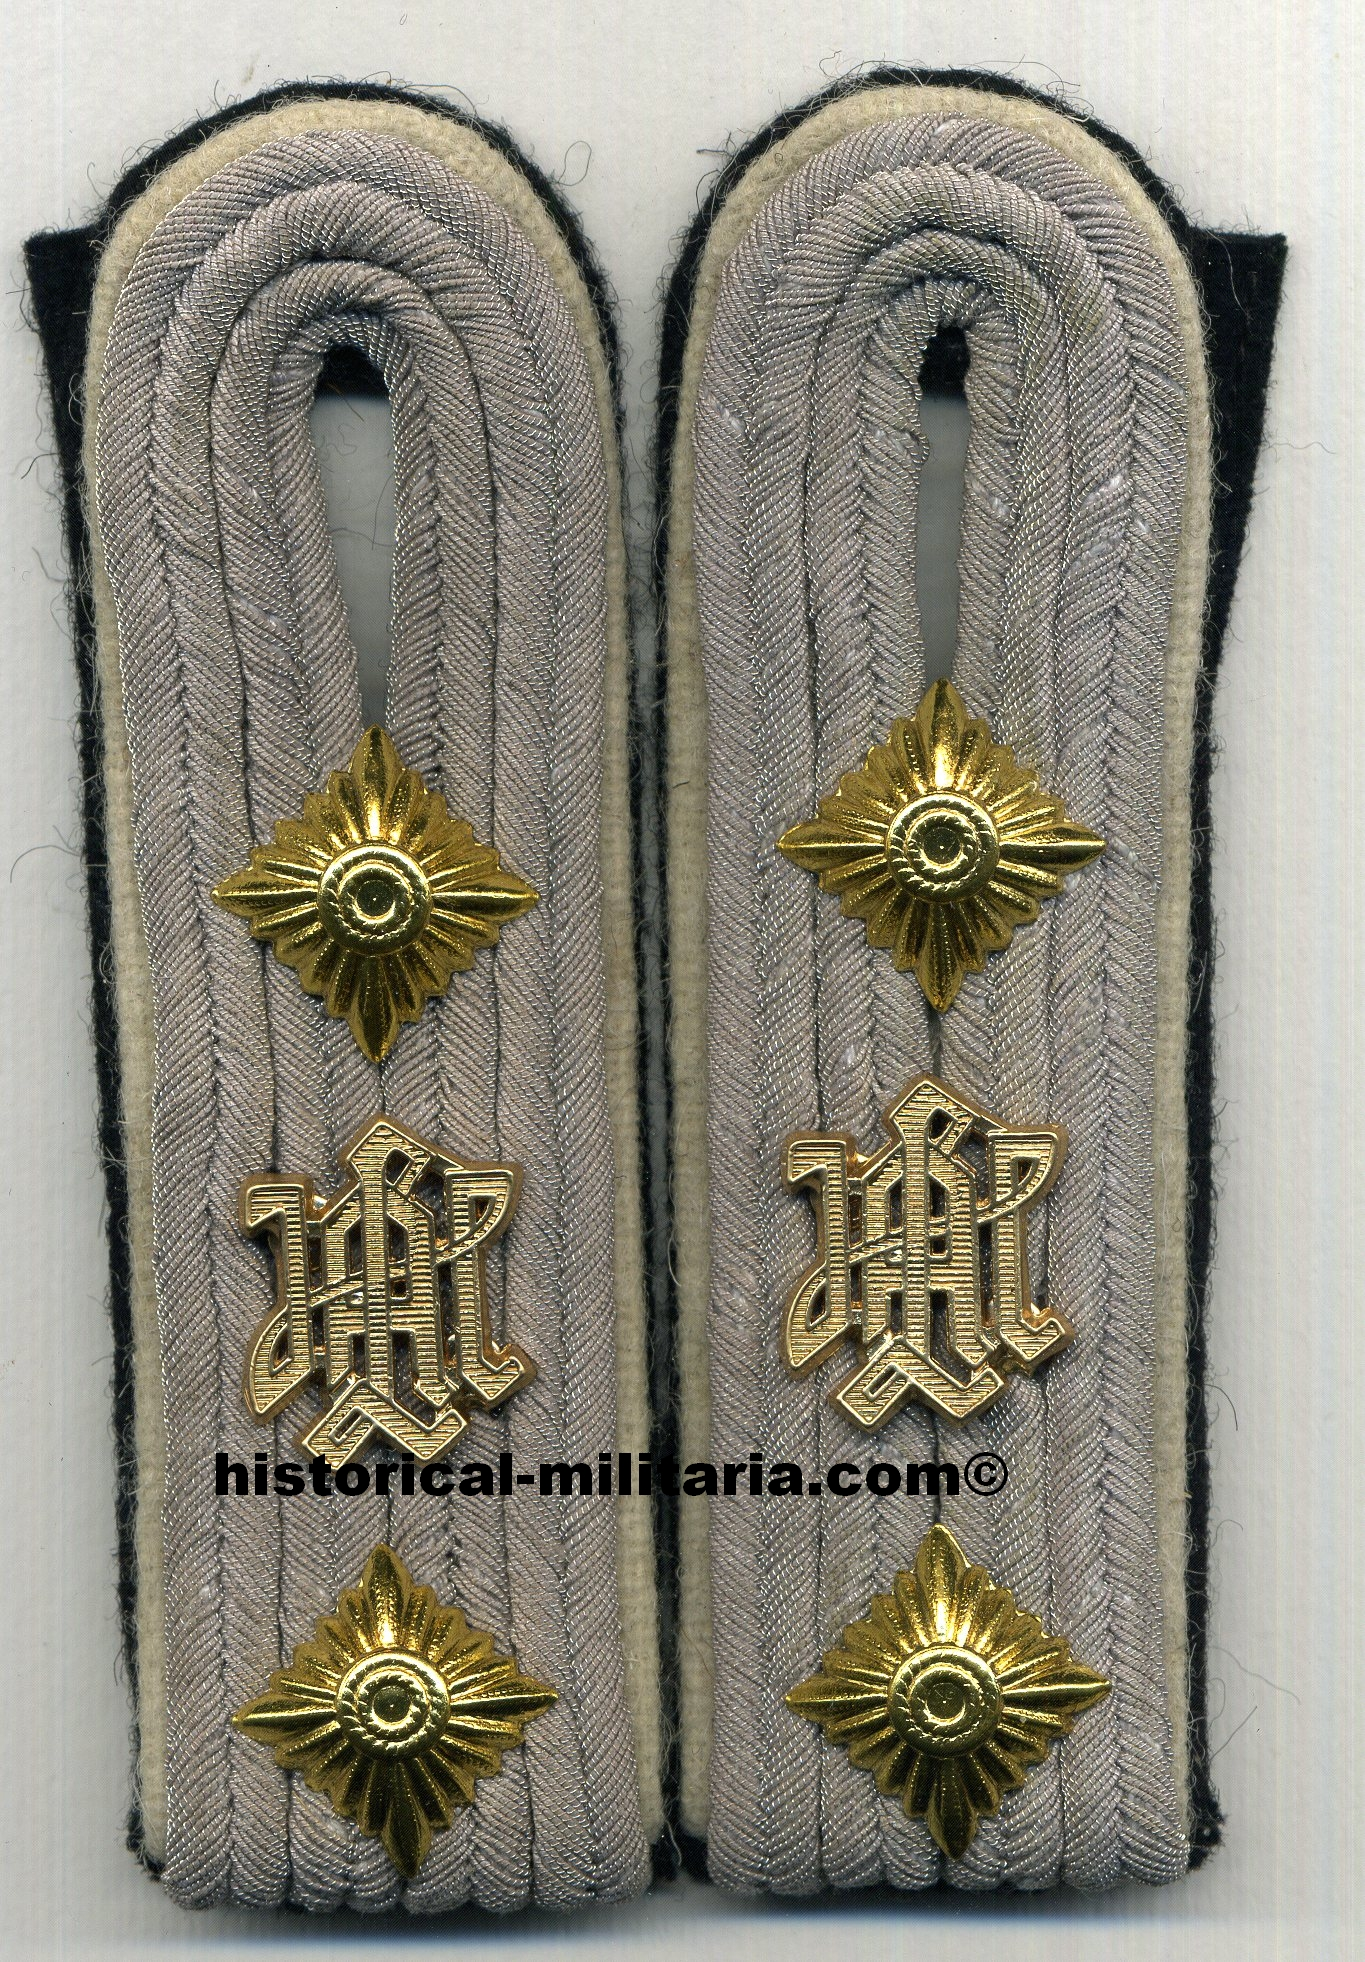 LAH SS-Hauptsturmführer Waffen-SS shoulder boards - Infantry of Leibstandarte SS Adolf Hitler with LAH cyphers Captain Schulterklappen spallline da Capitano